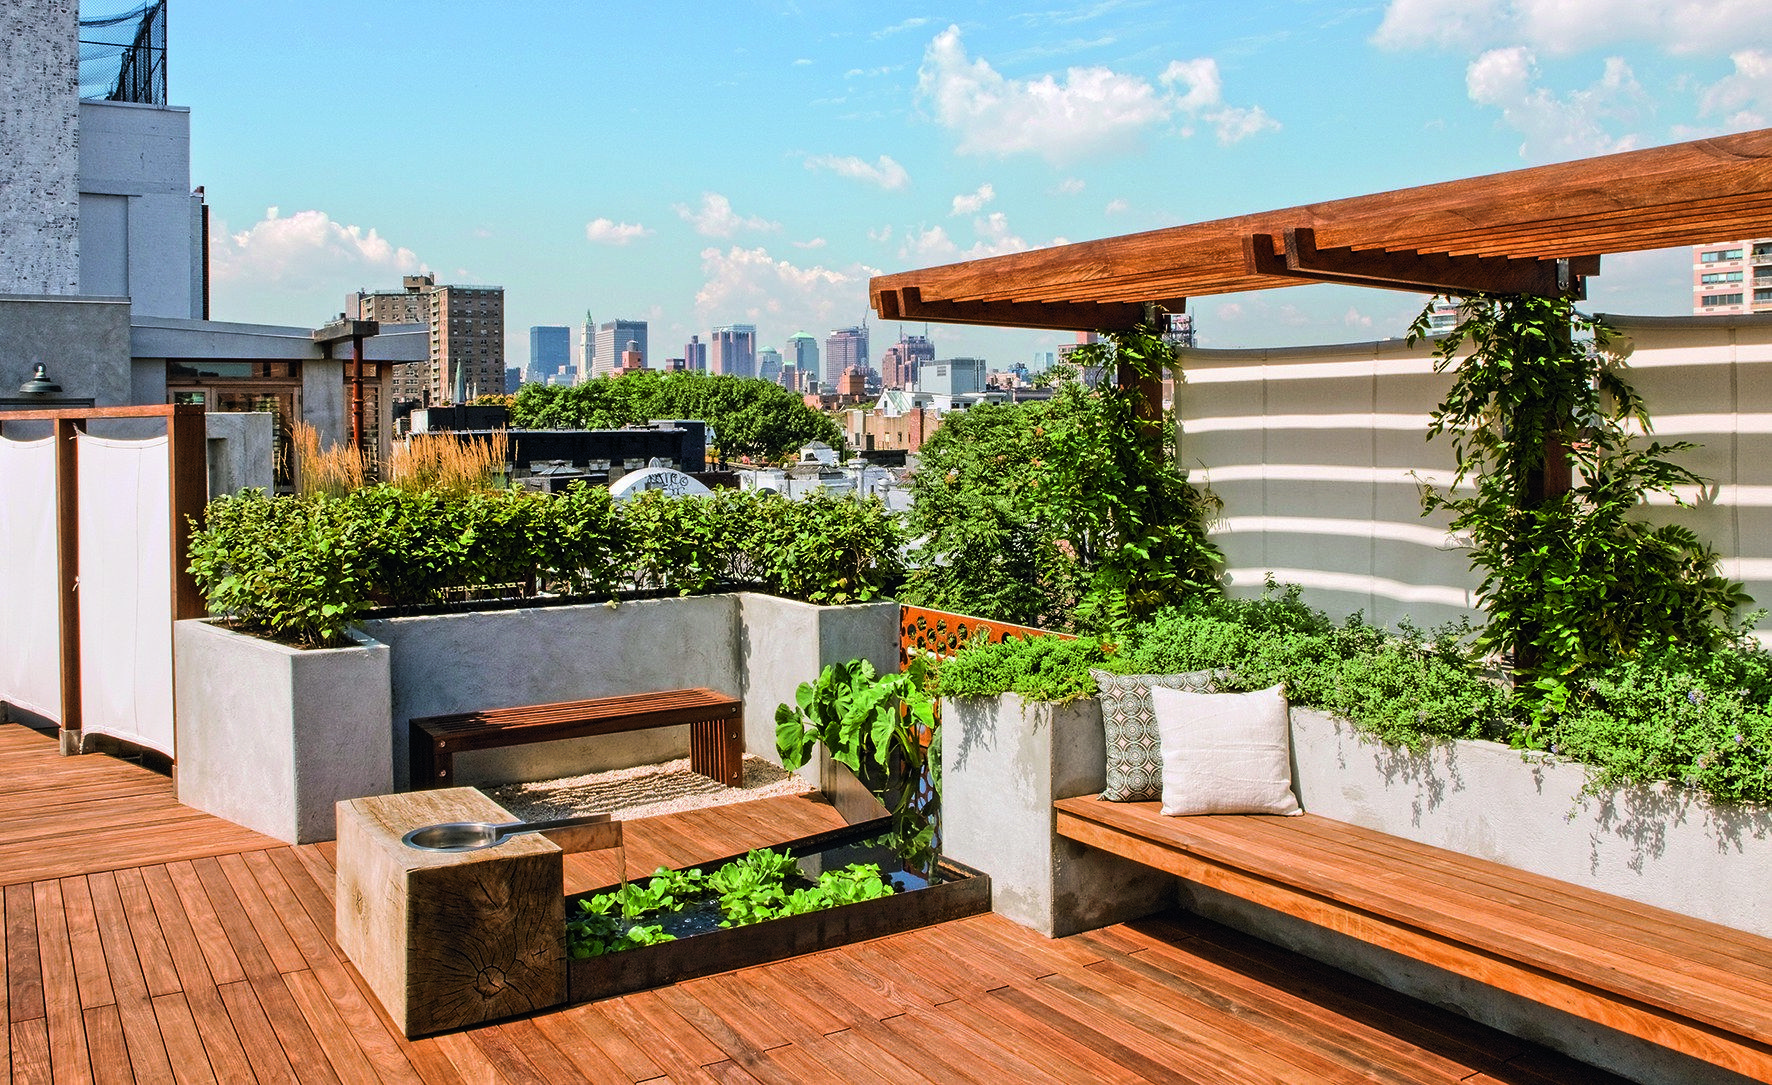 9 Remarkable Rooftop Garden Designs Around The World Roof Garden Design Roof Landscape Rooftop Design